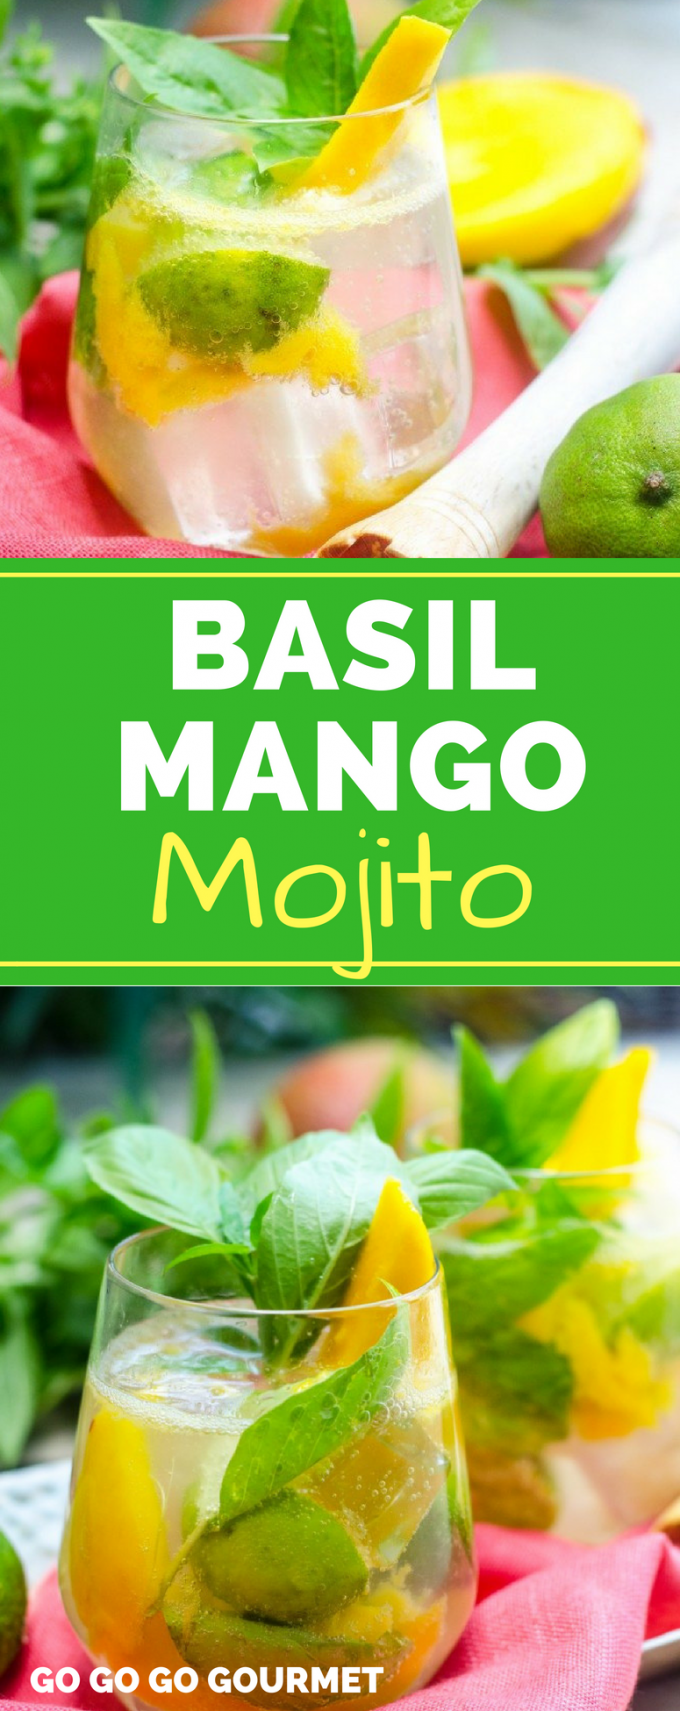 This easy Basil Mango Mojito recipe is the BEST! With fresh fruit like mango, and basil instead of the mint, this will be one of your new favorite summer cocktails. #basilmangomojitorecipe #easysummercocktails #summercocktailrecipes #gogogogourmet